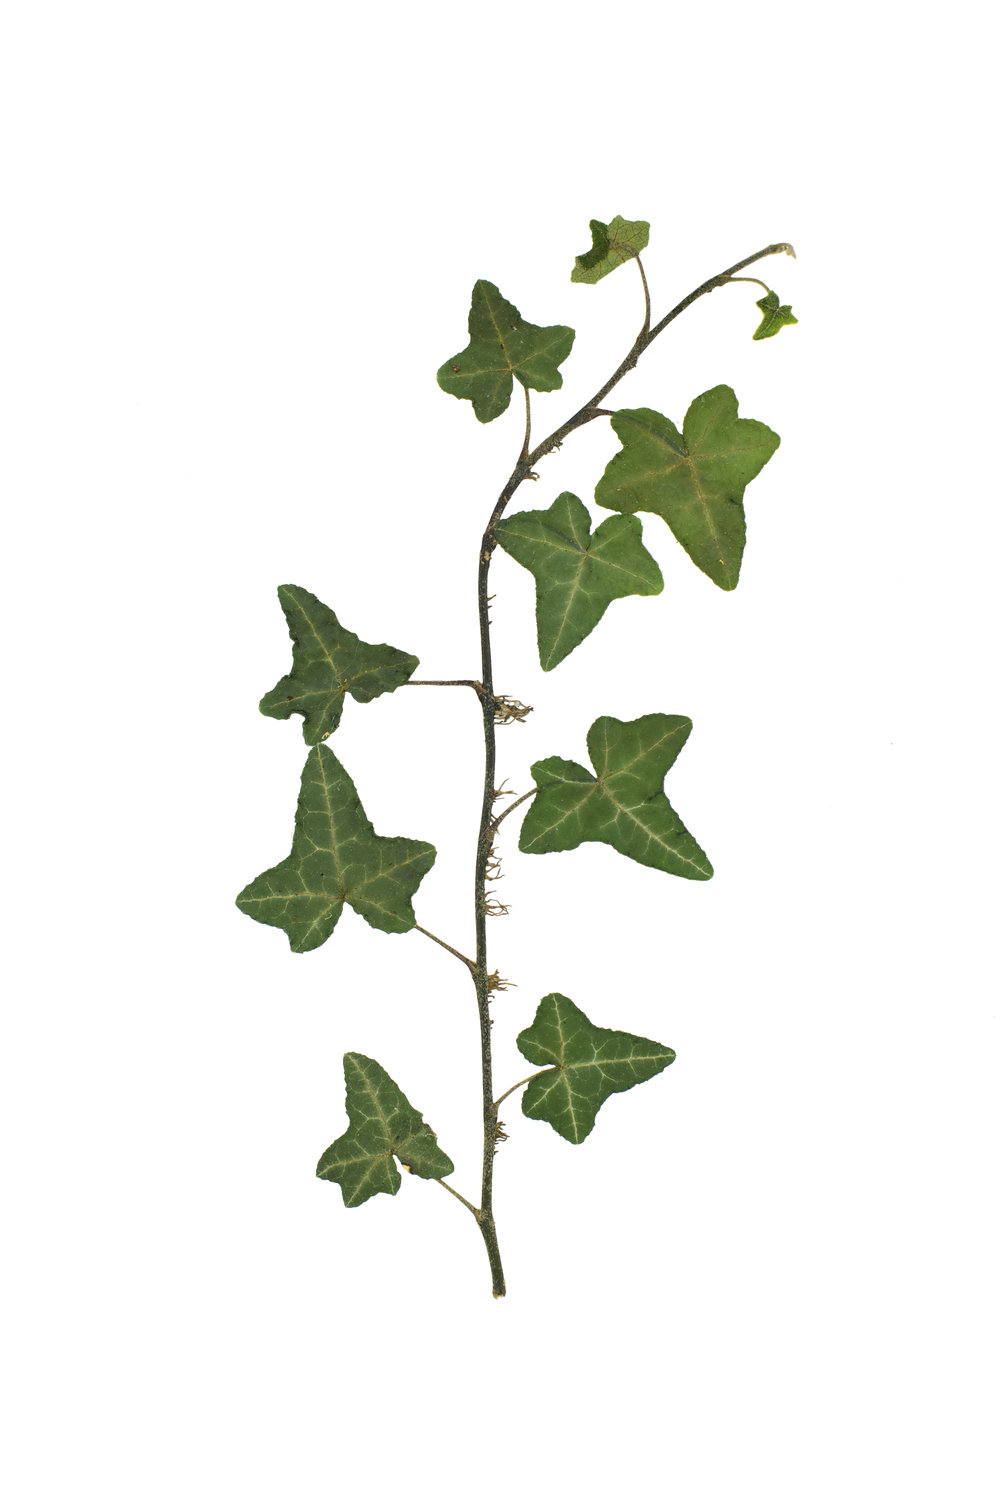 Hedera helix / English Ivy